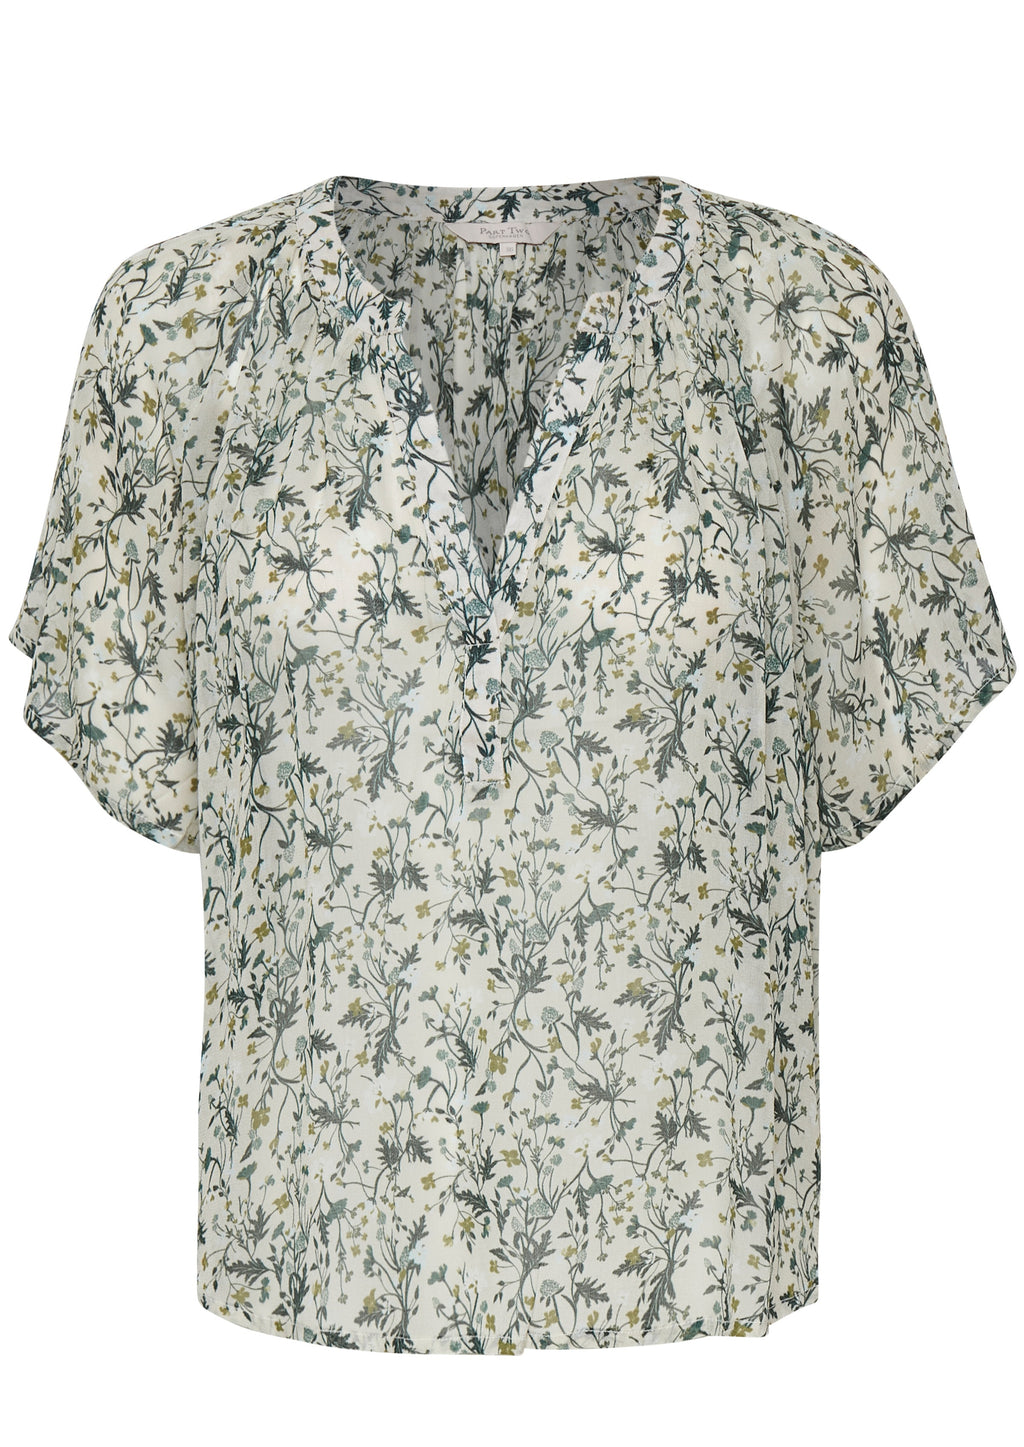 Part Two Ibe Print Blouse - Green Botanical